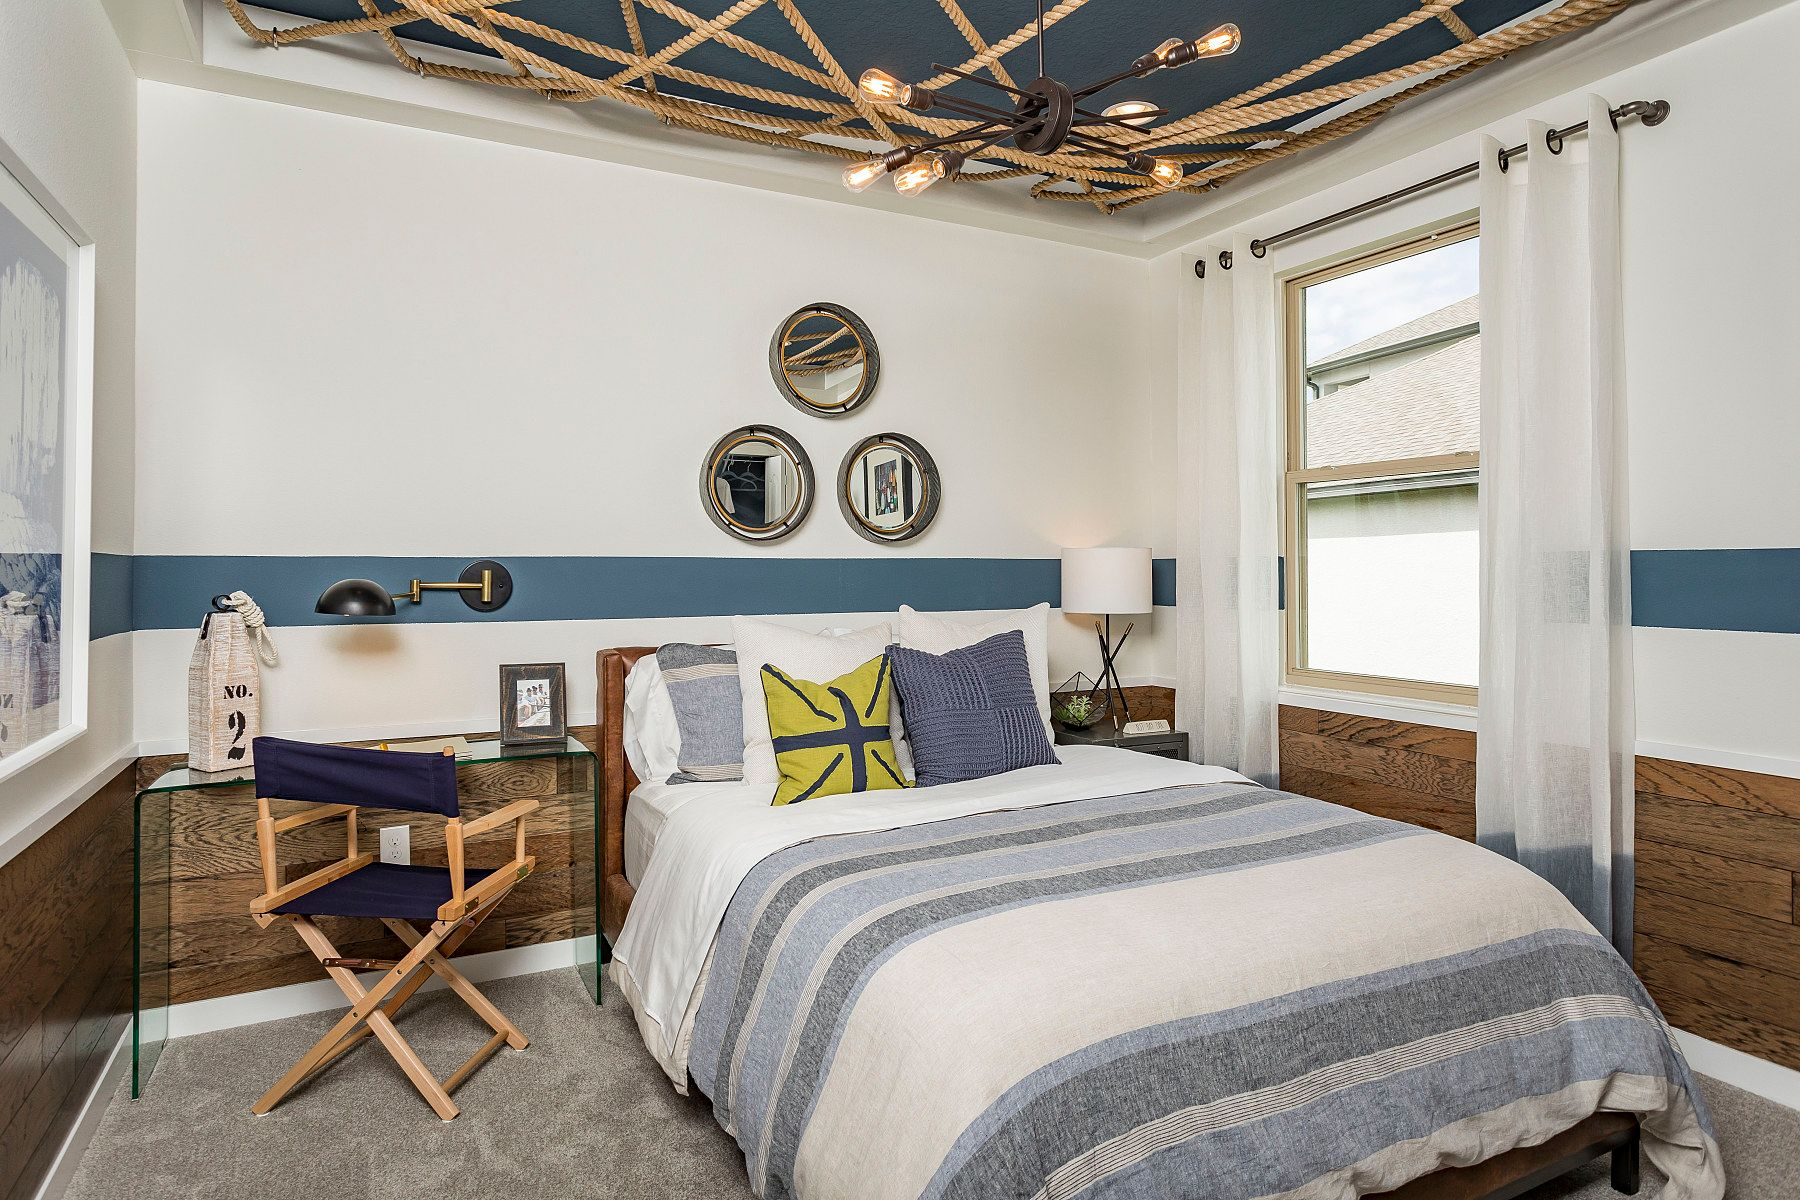 Bedroom featured in the Corina II By M/I Homes in Orlando, FL